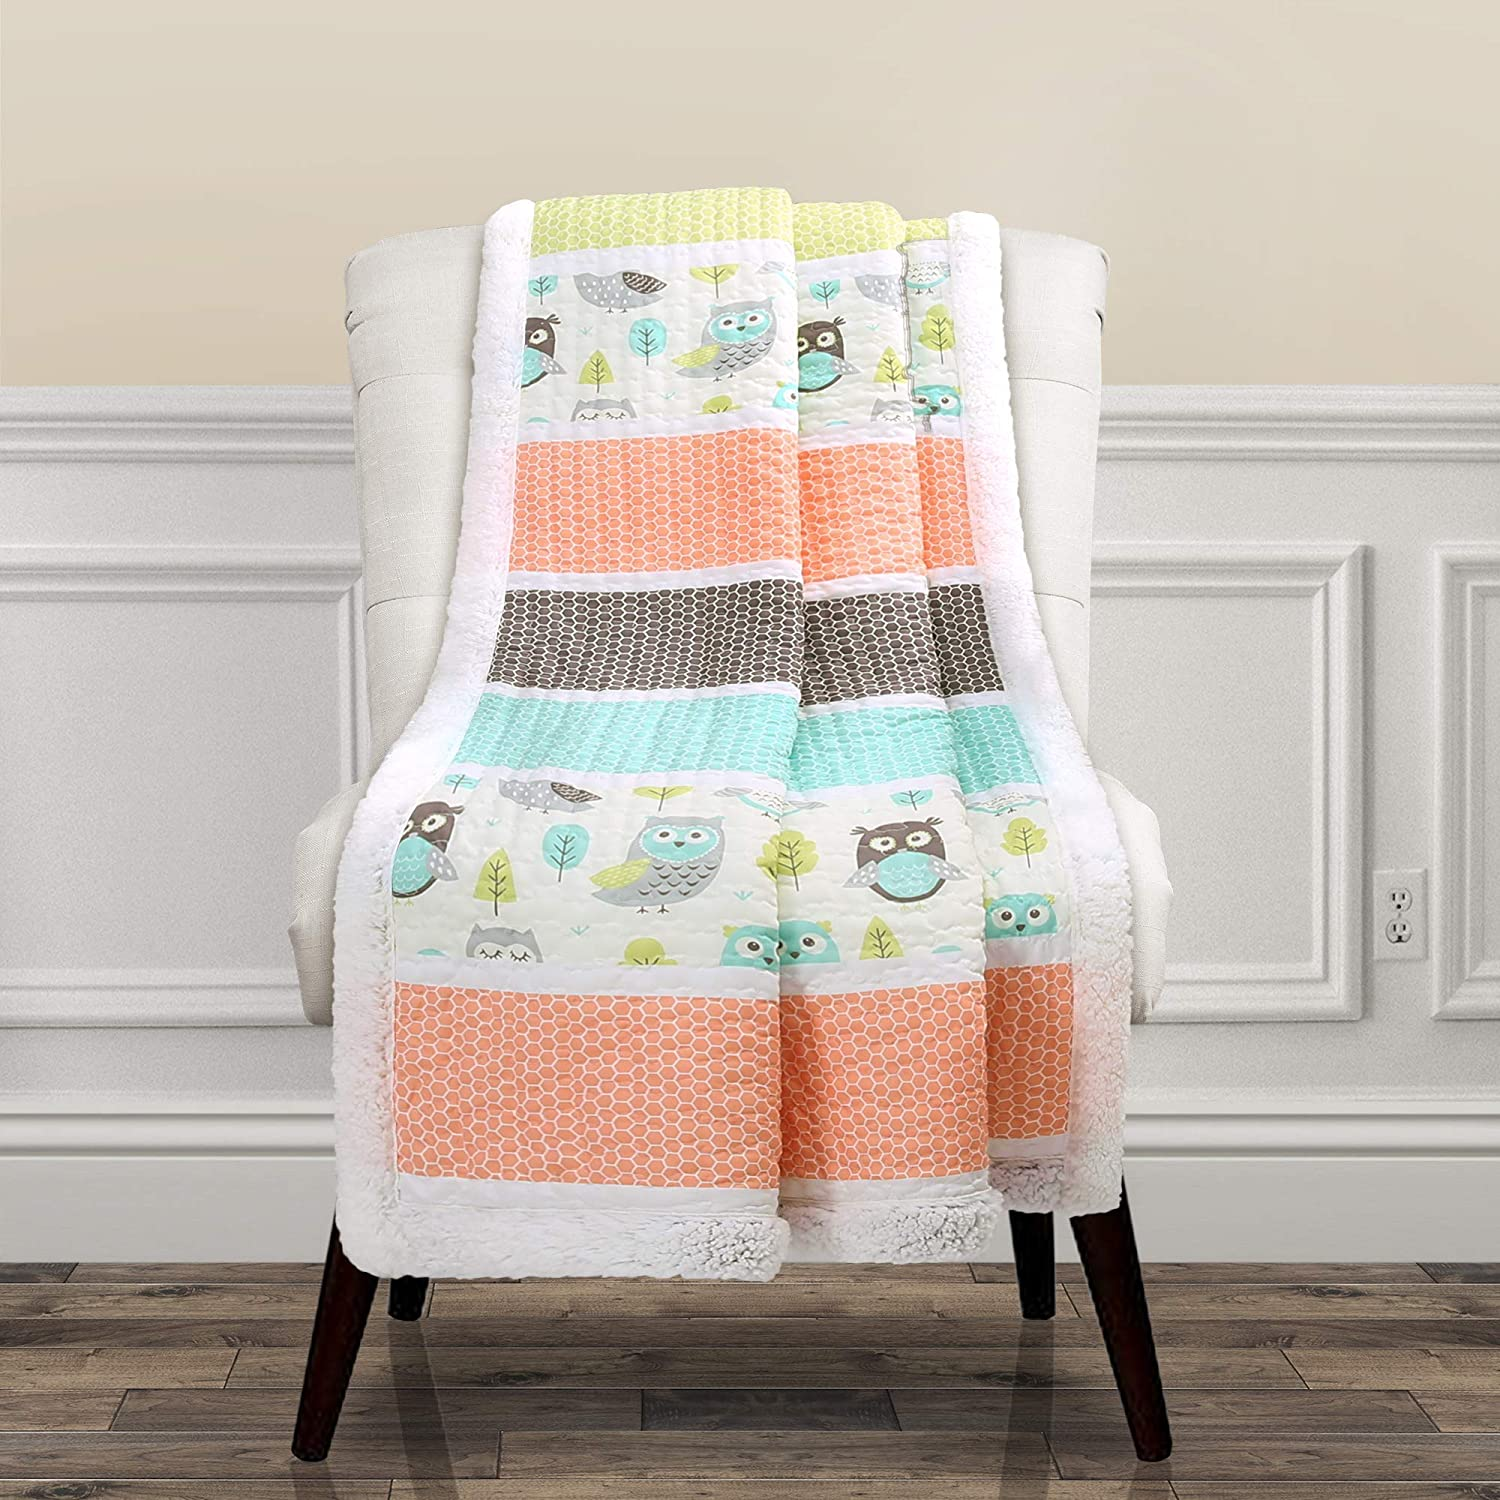 Lush Decor Coral It is very popular Turquoise Owl Stripe Sherpa Blanket Max 71% OFF Throw 6